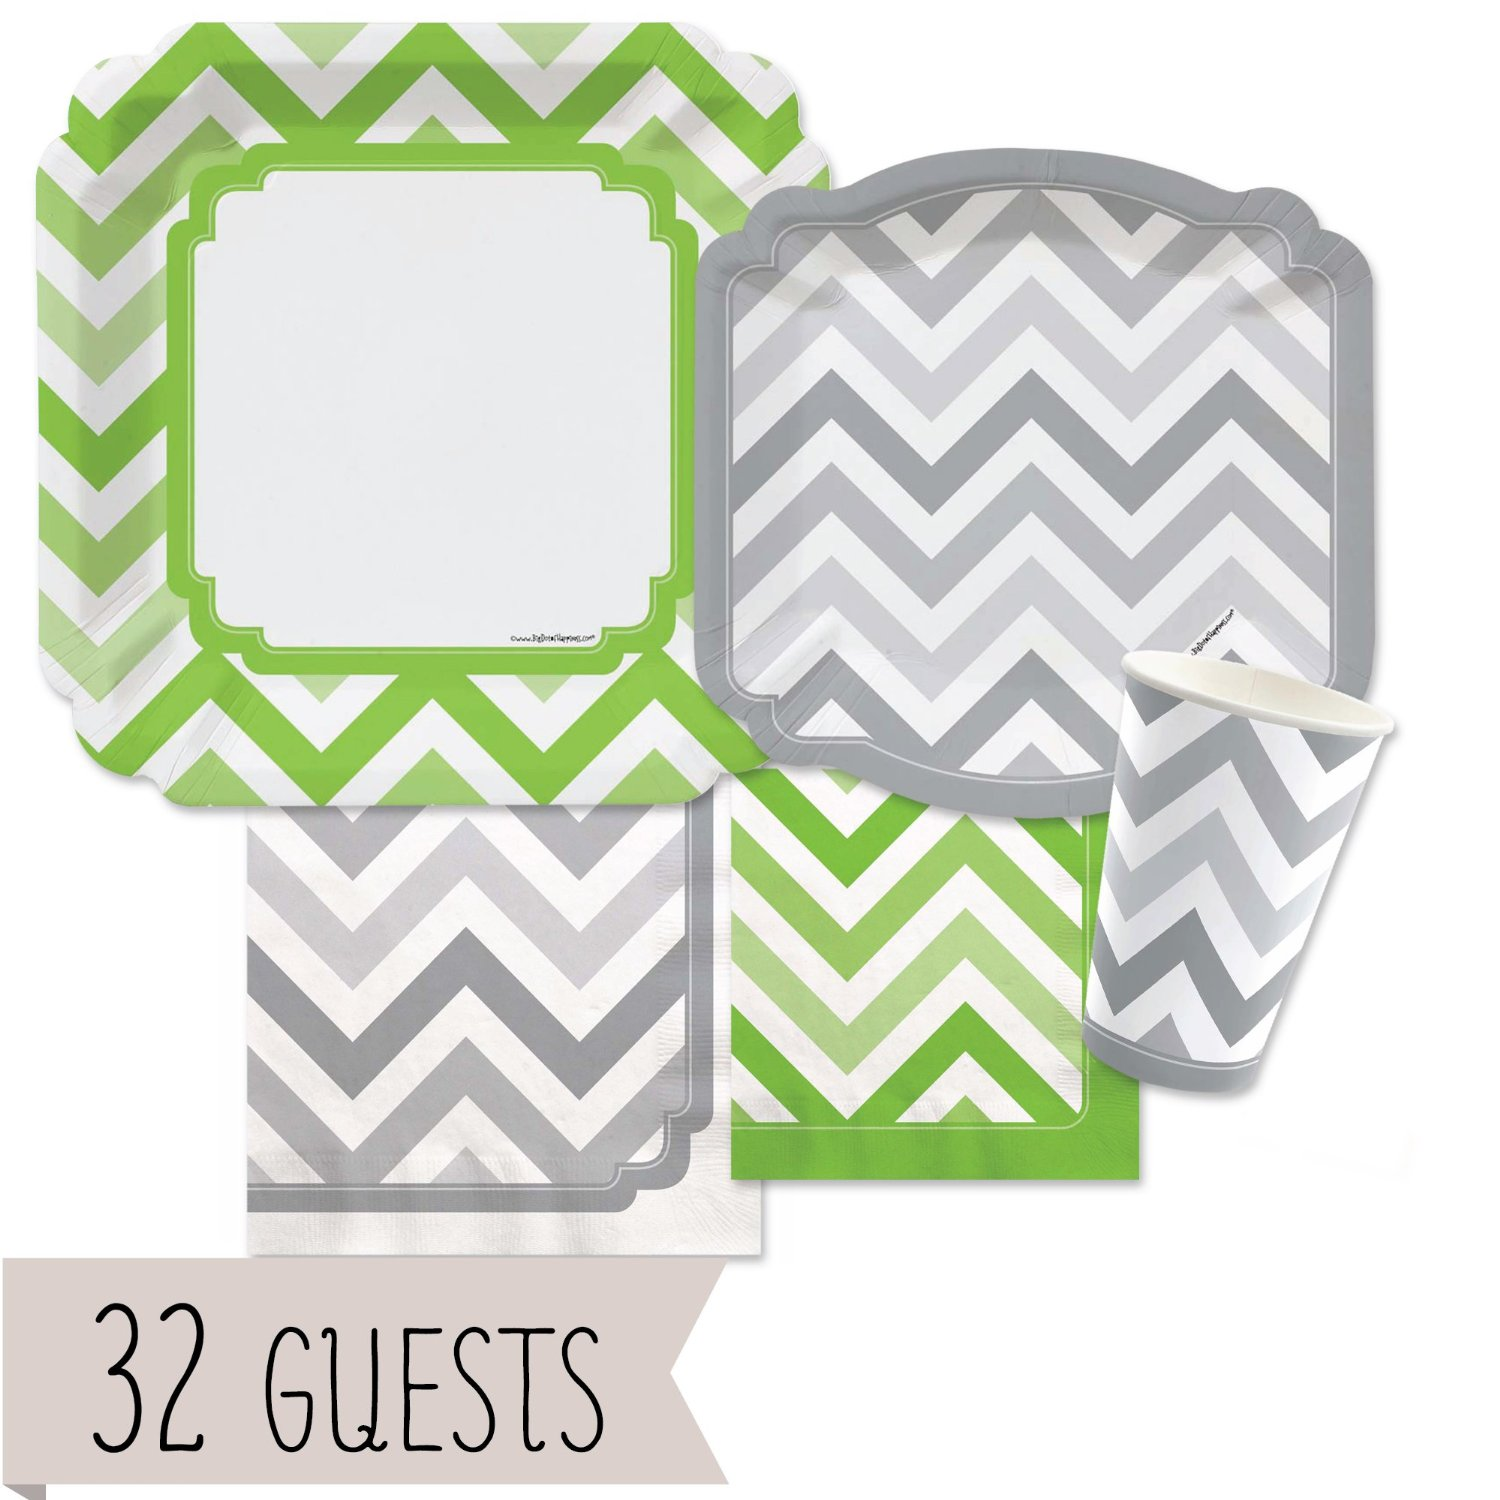 Chevron Green and Gray - Party Tableware Plates, Cups, Napkins - Bundle for 32